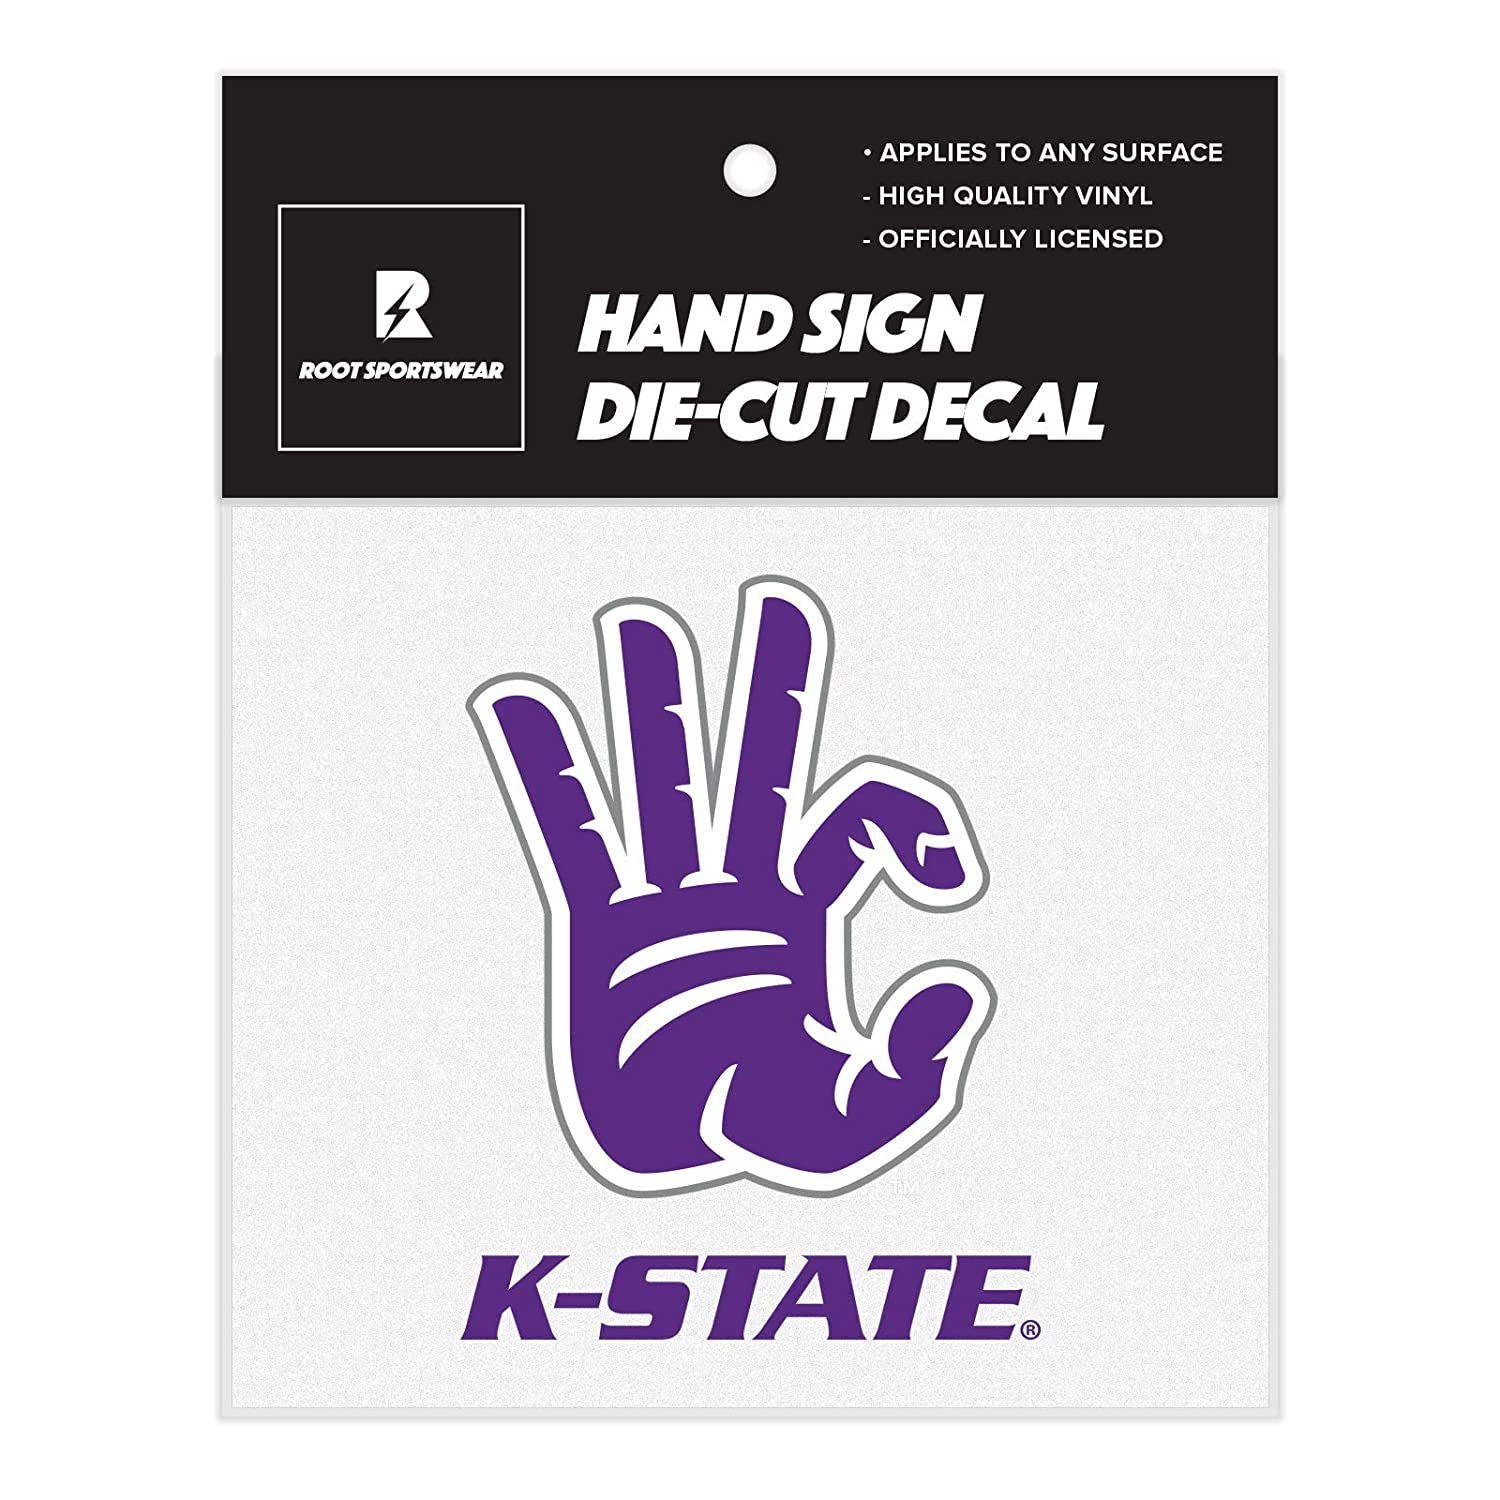 Root Sportswear Kansas State University K-State Wildcats WC Hand Sign Die-Cut Car Decal